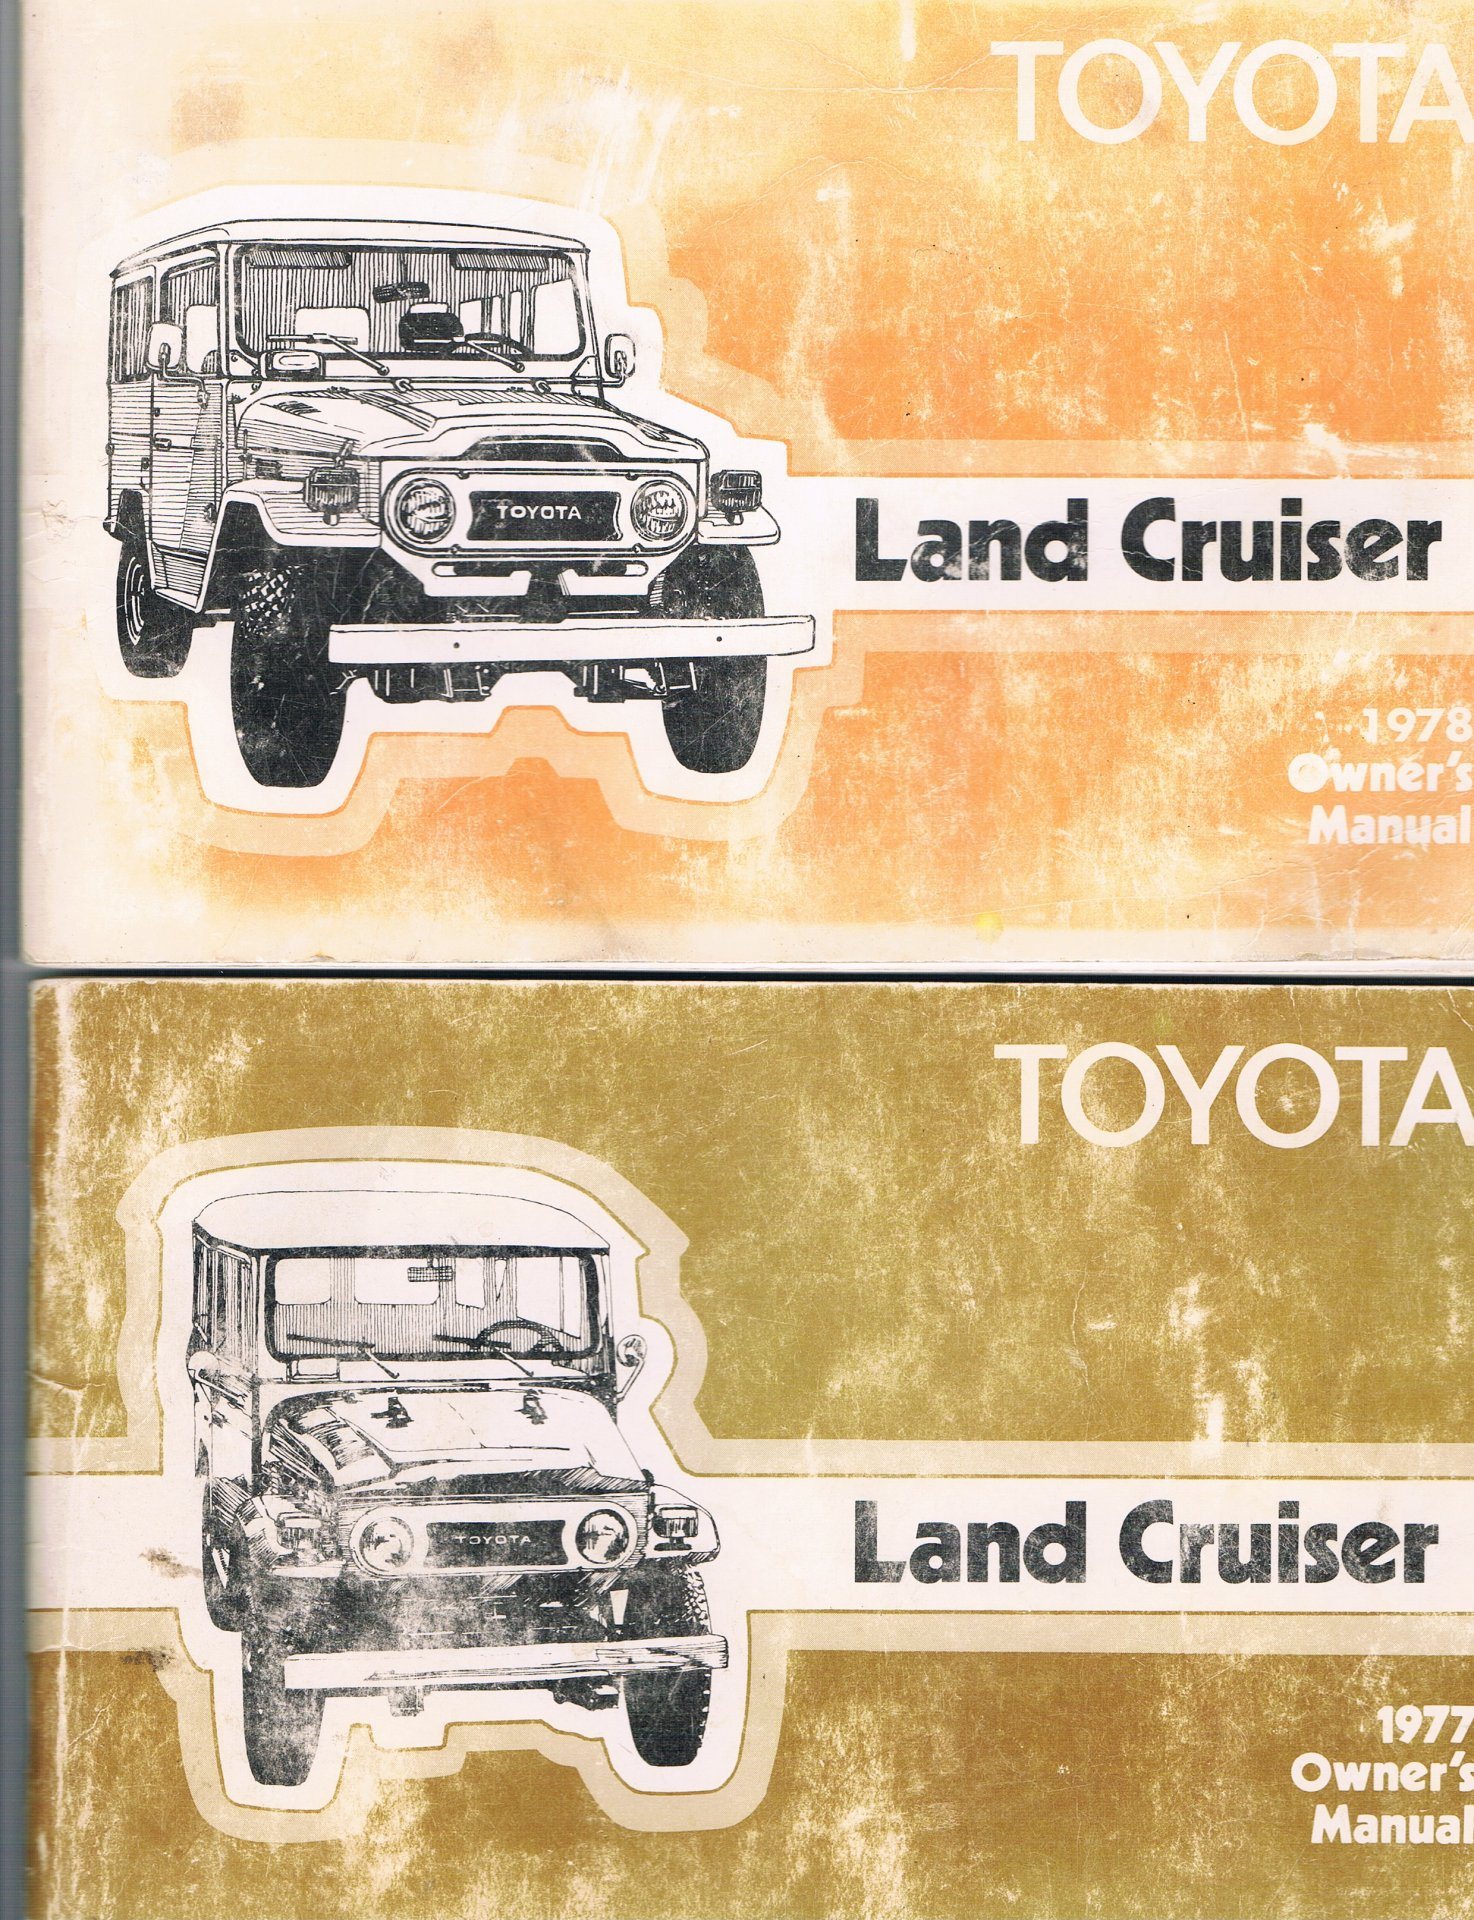 owner s manual reference thread 40 and 55 series ih8mud forum rh forum ih8mud com toyota land cruiser bj40 repair manual toyota land cruiser bj40 workshop manual